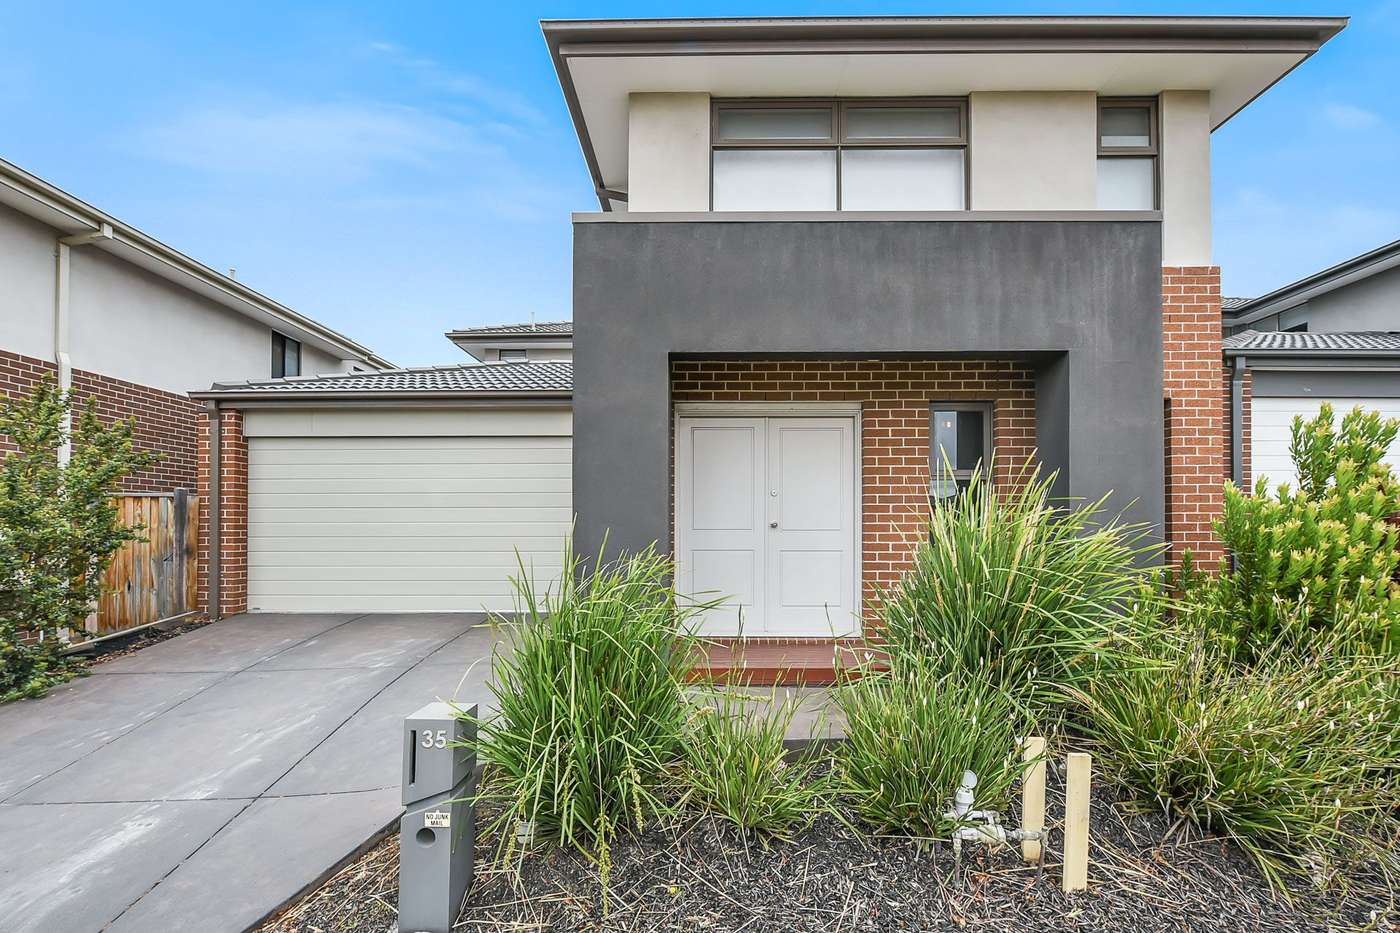 Main view of Homely house listing, 35 Green Gully Road, Clyde, VIC 3978